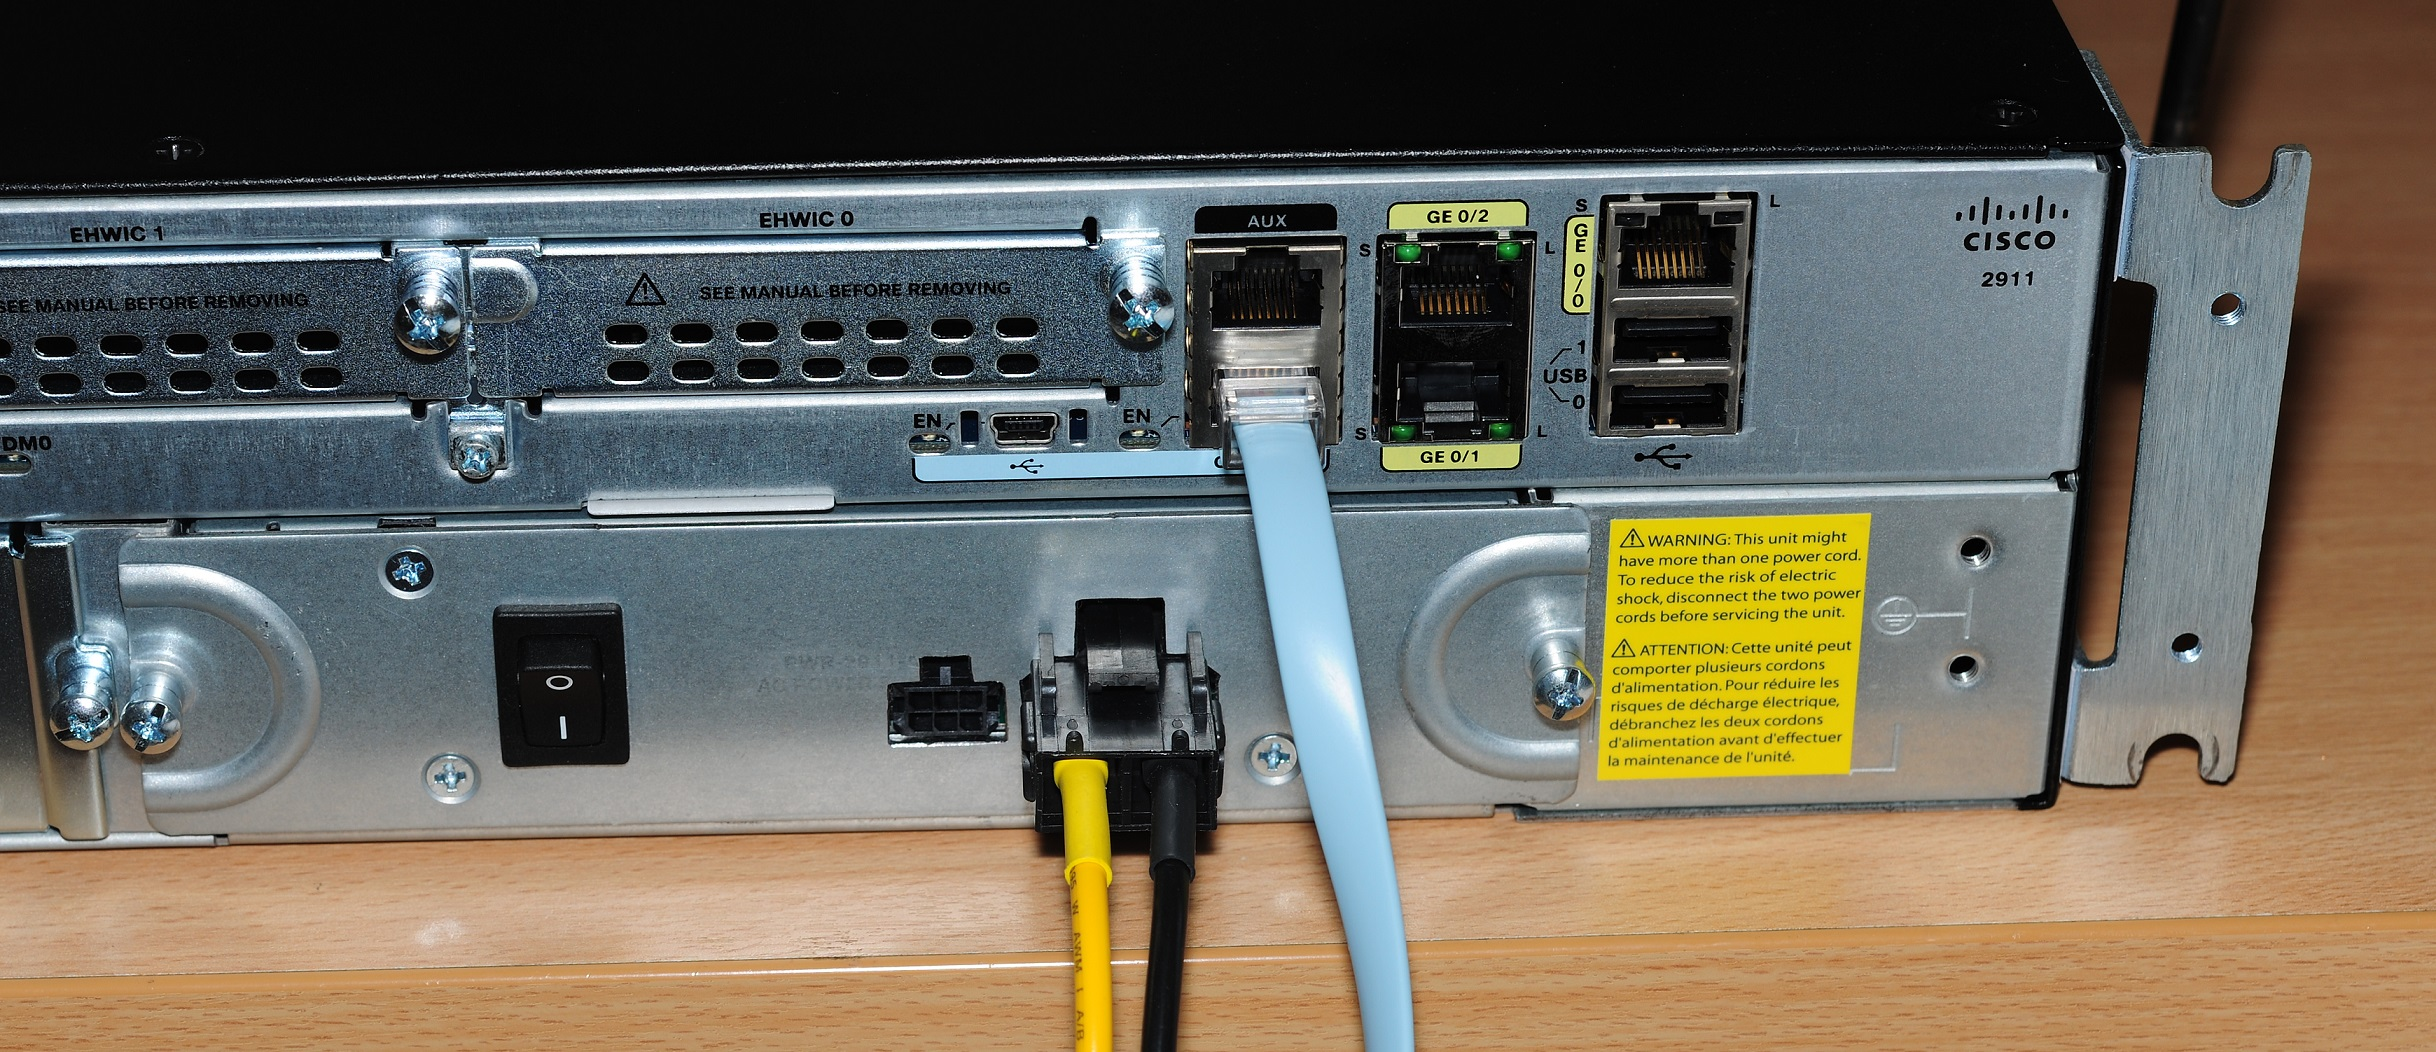 Silencing a Cisco 2911 router for home use – Matt's Tech Pages